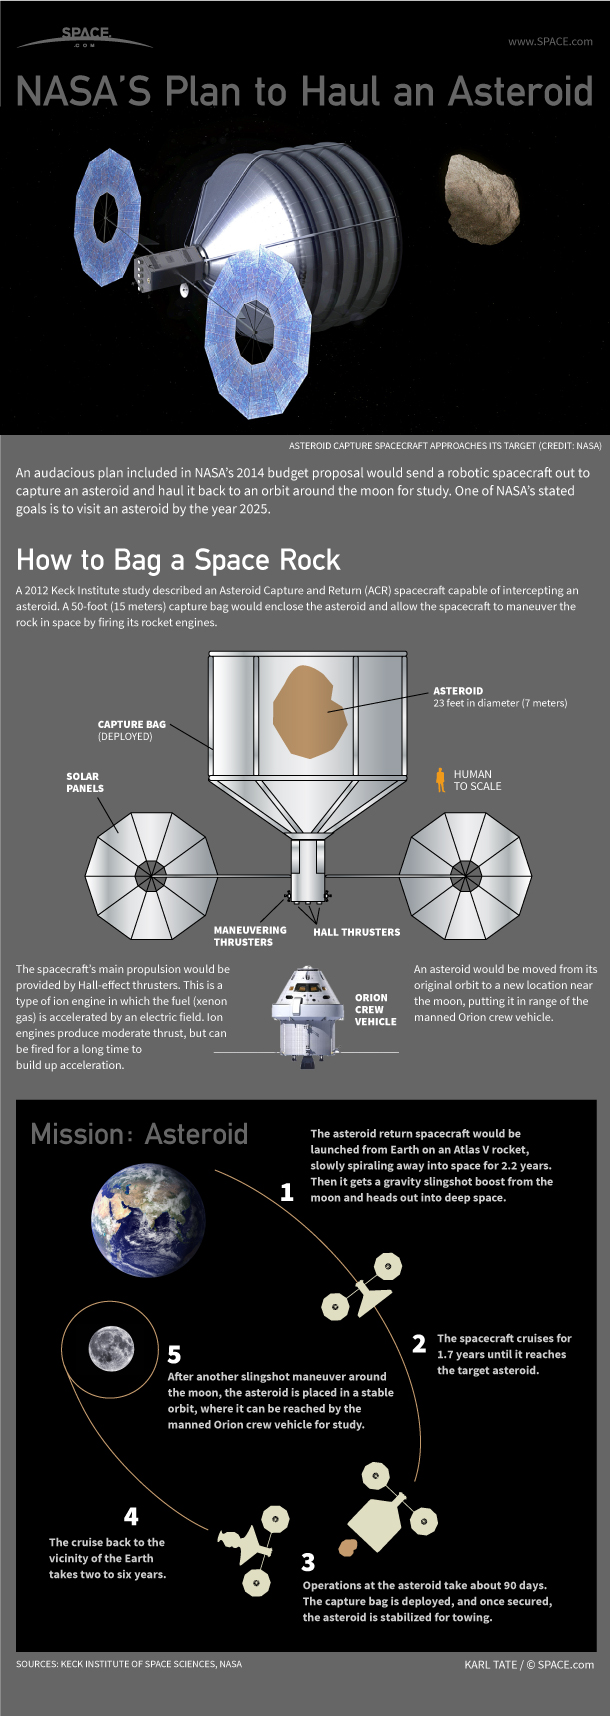 How NASA's Asteroid Capture and Return Mission Works (Infographic)